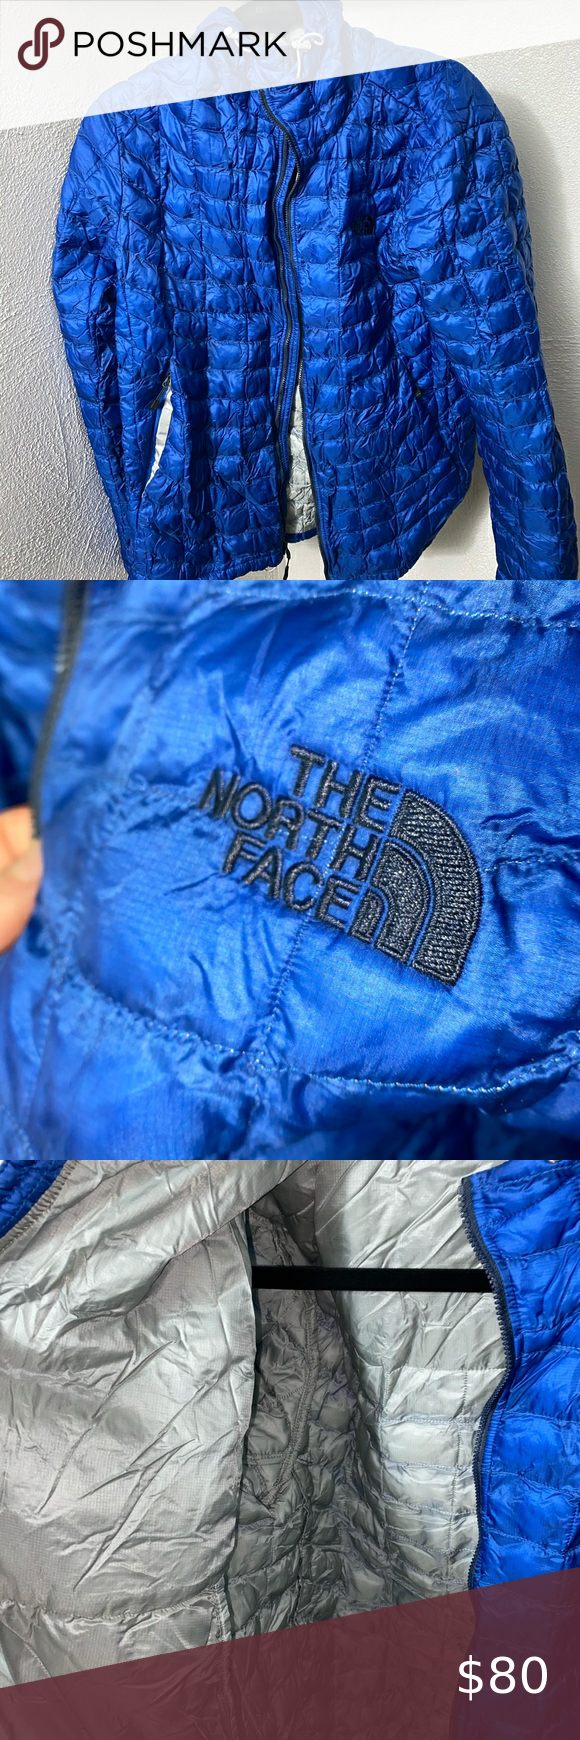 The North Face Blue Jacket (M)